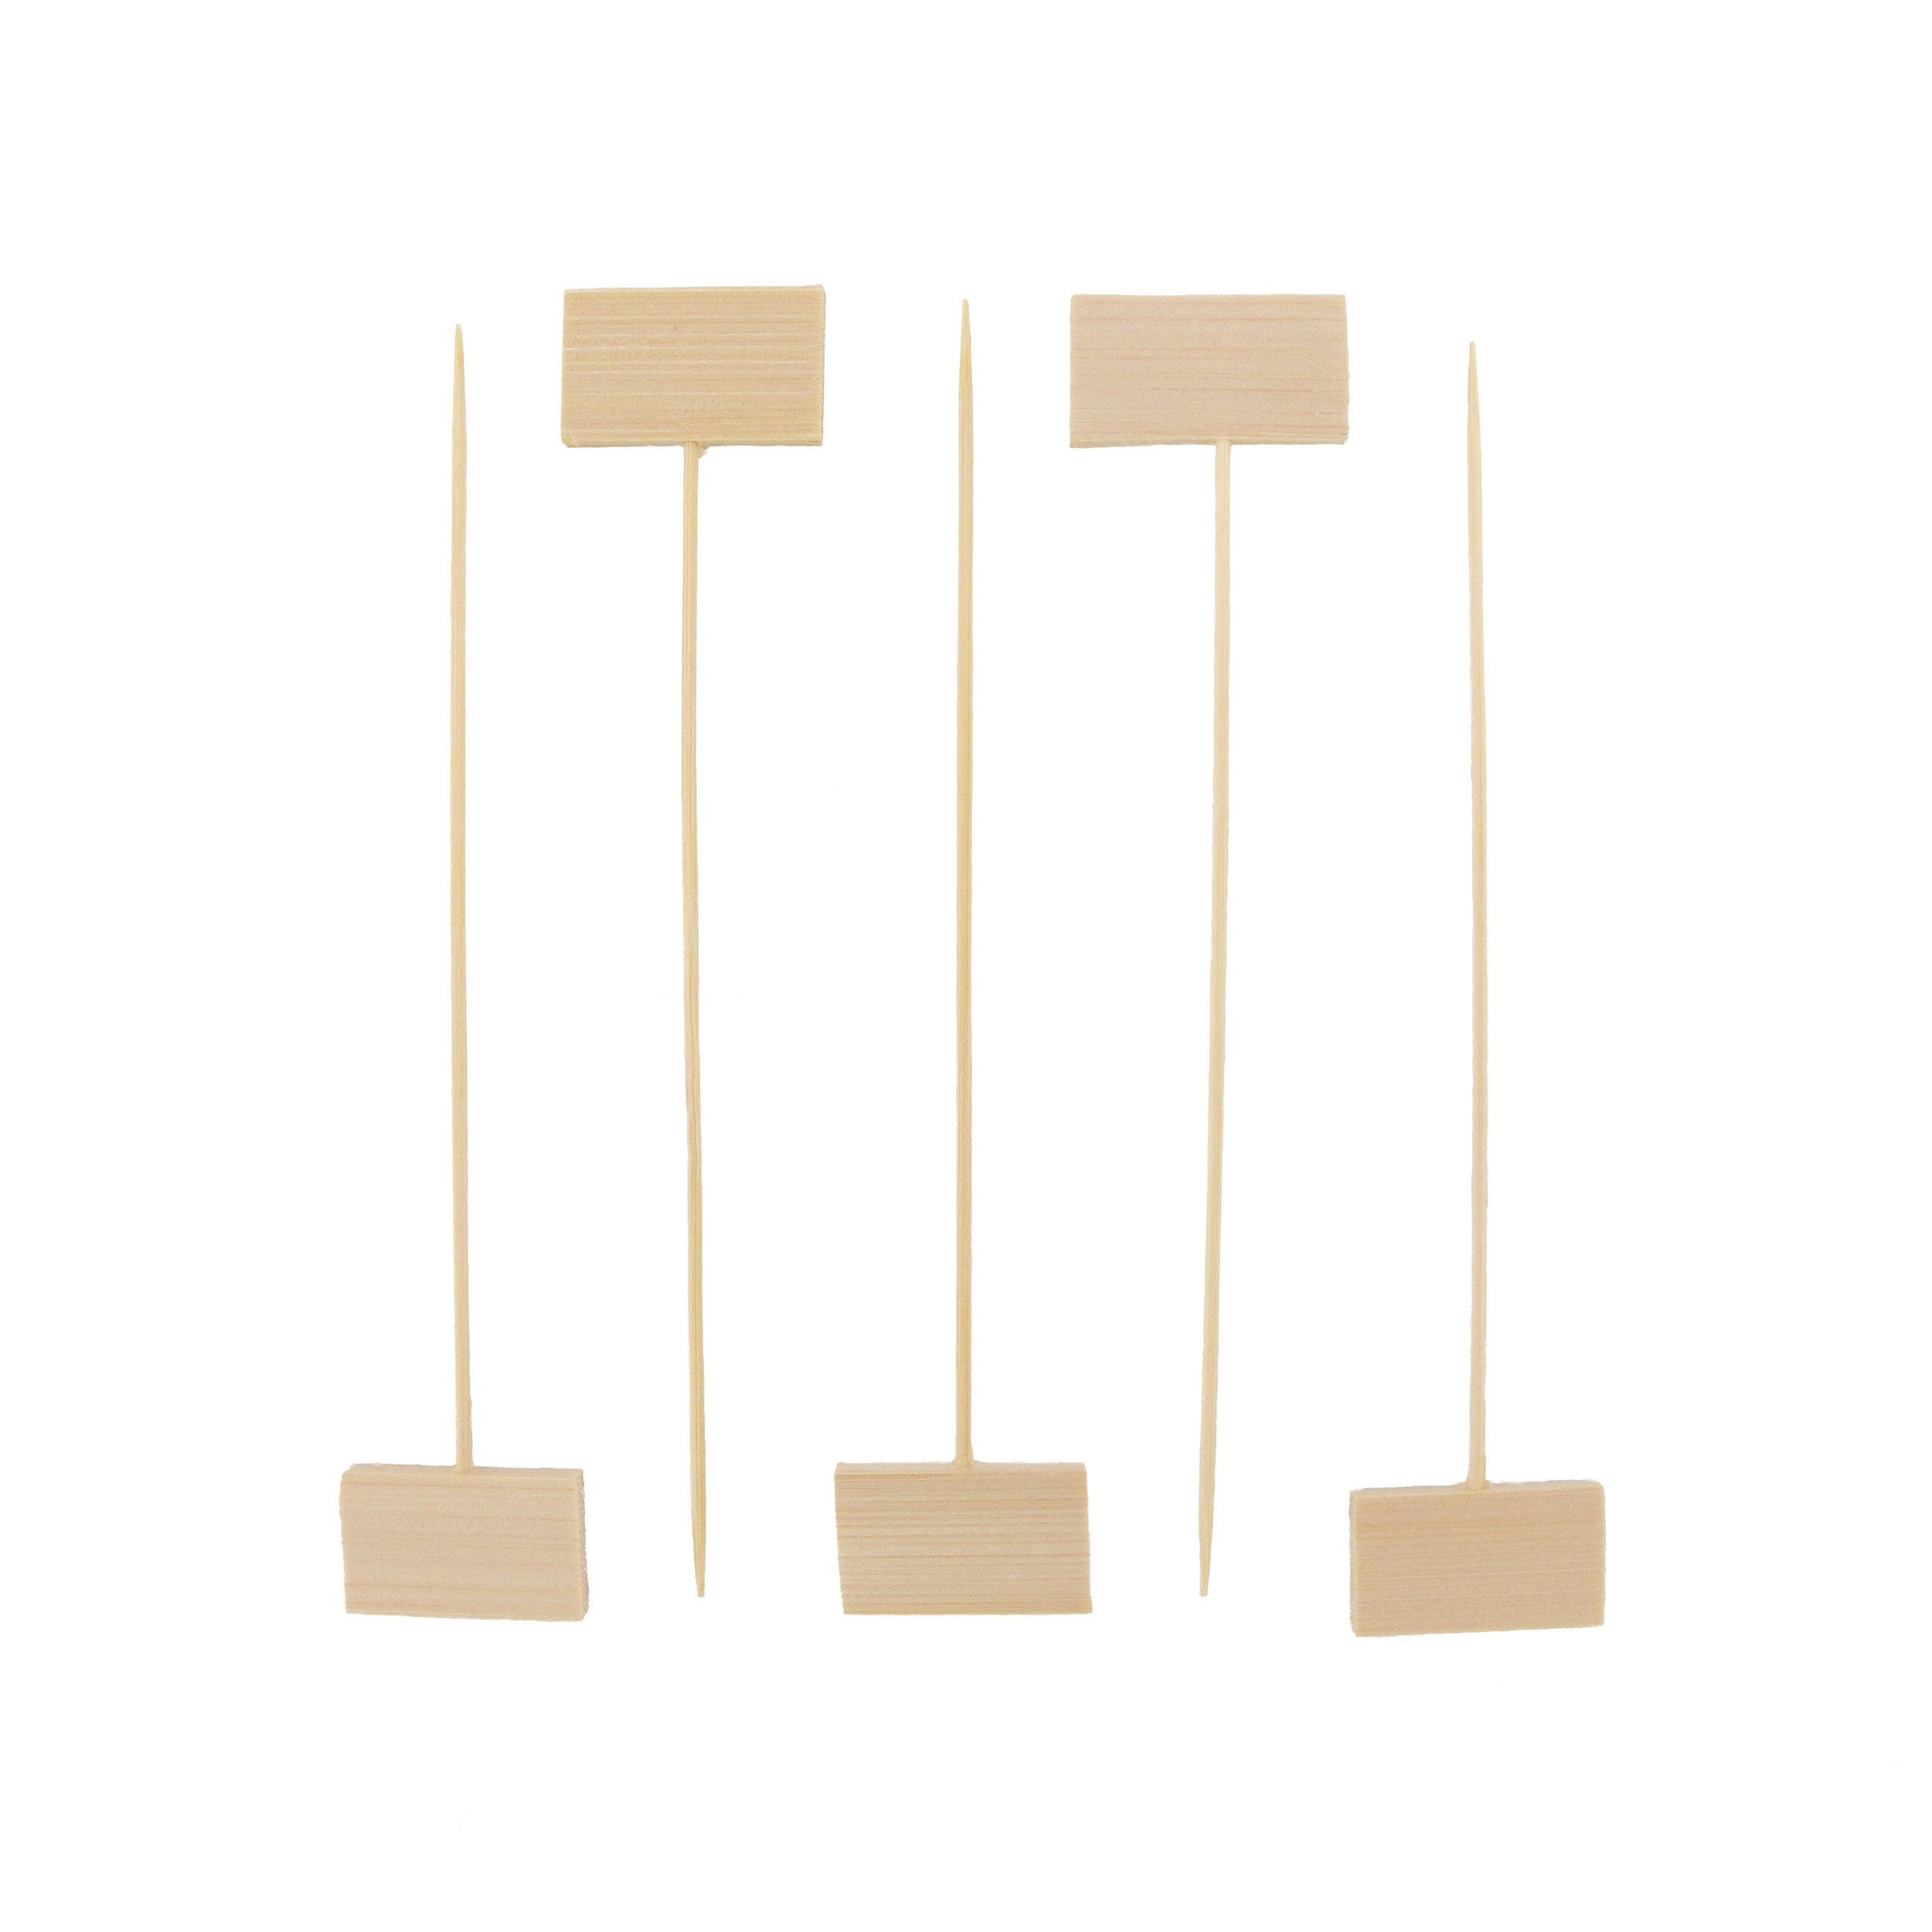 BambooMN 5'' Decorative Bamboo Small Billboard Cocktail Hors' D'oeuvres Pick Skewer for Events, Restaurants, or Home Party Supplies, 1000 Pieces